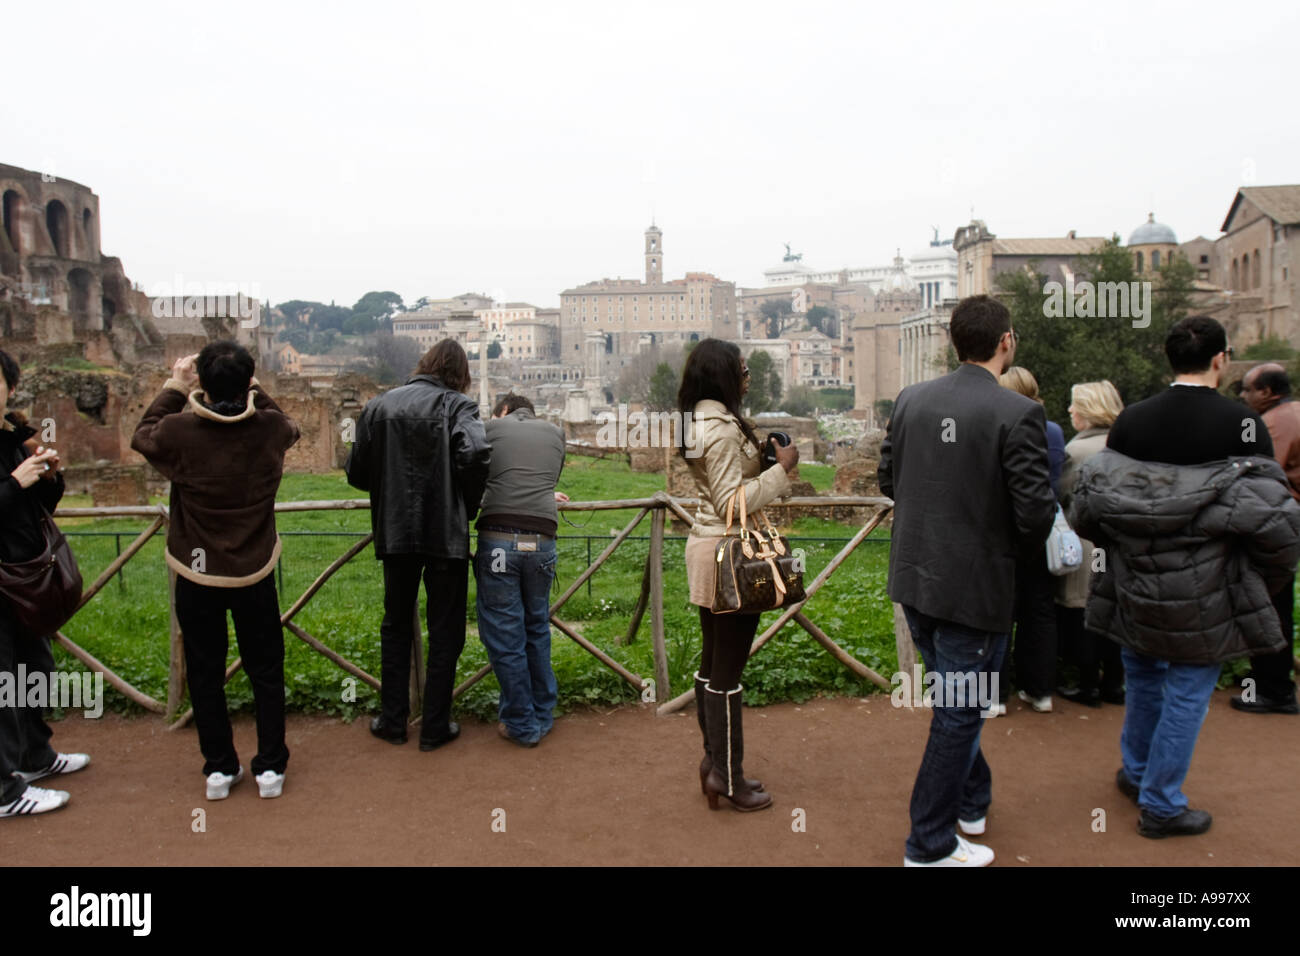 Tourists take pictures at Forum Romanum in Rom, Italy - Stock Image